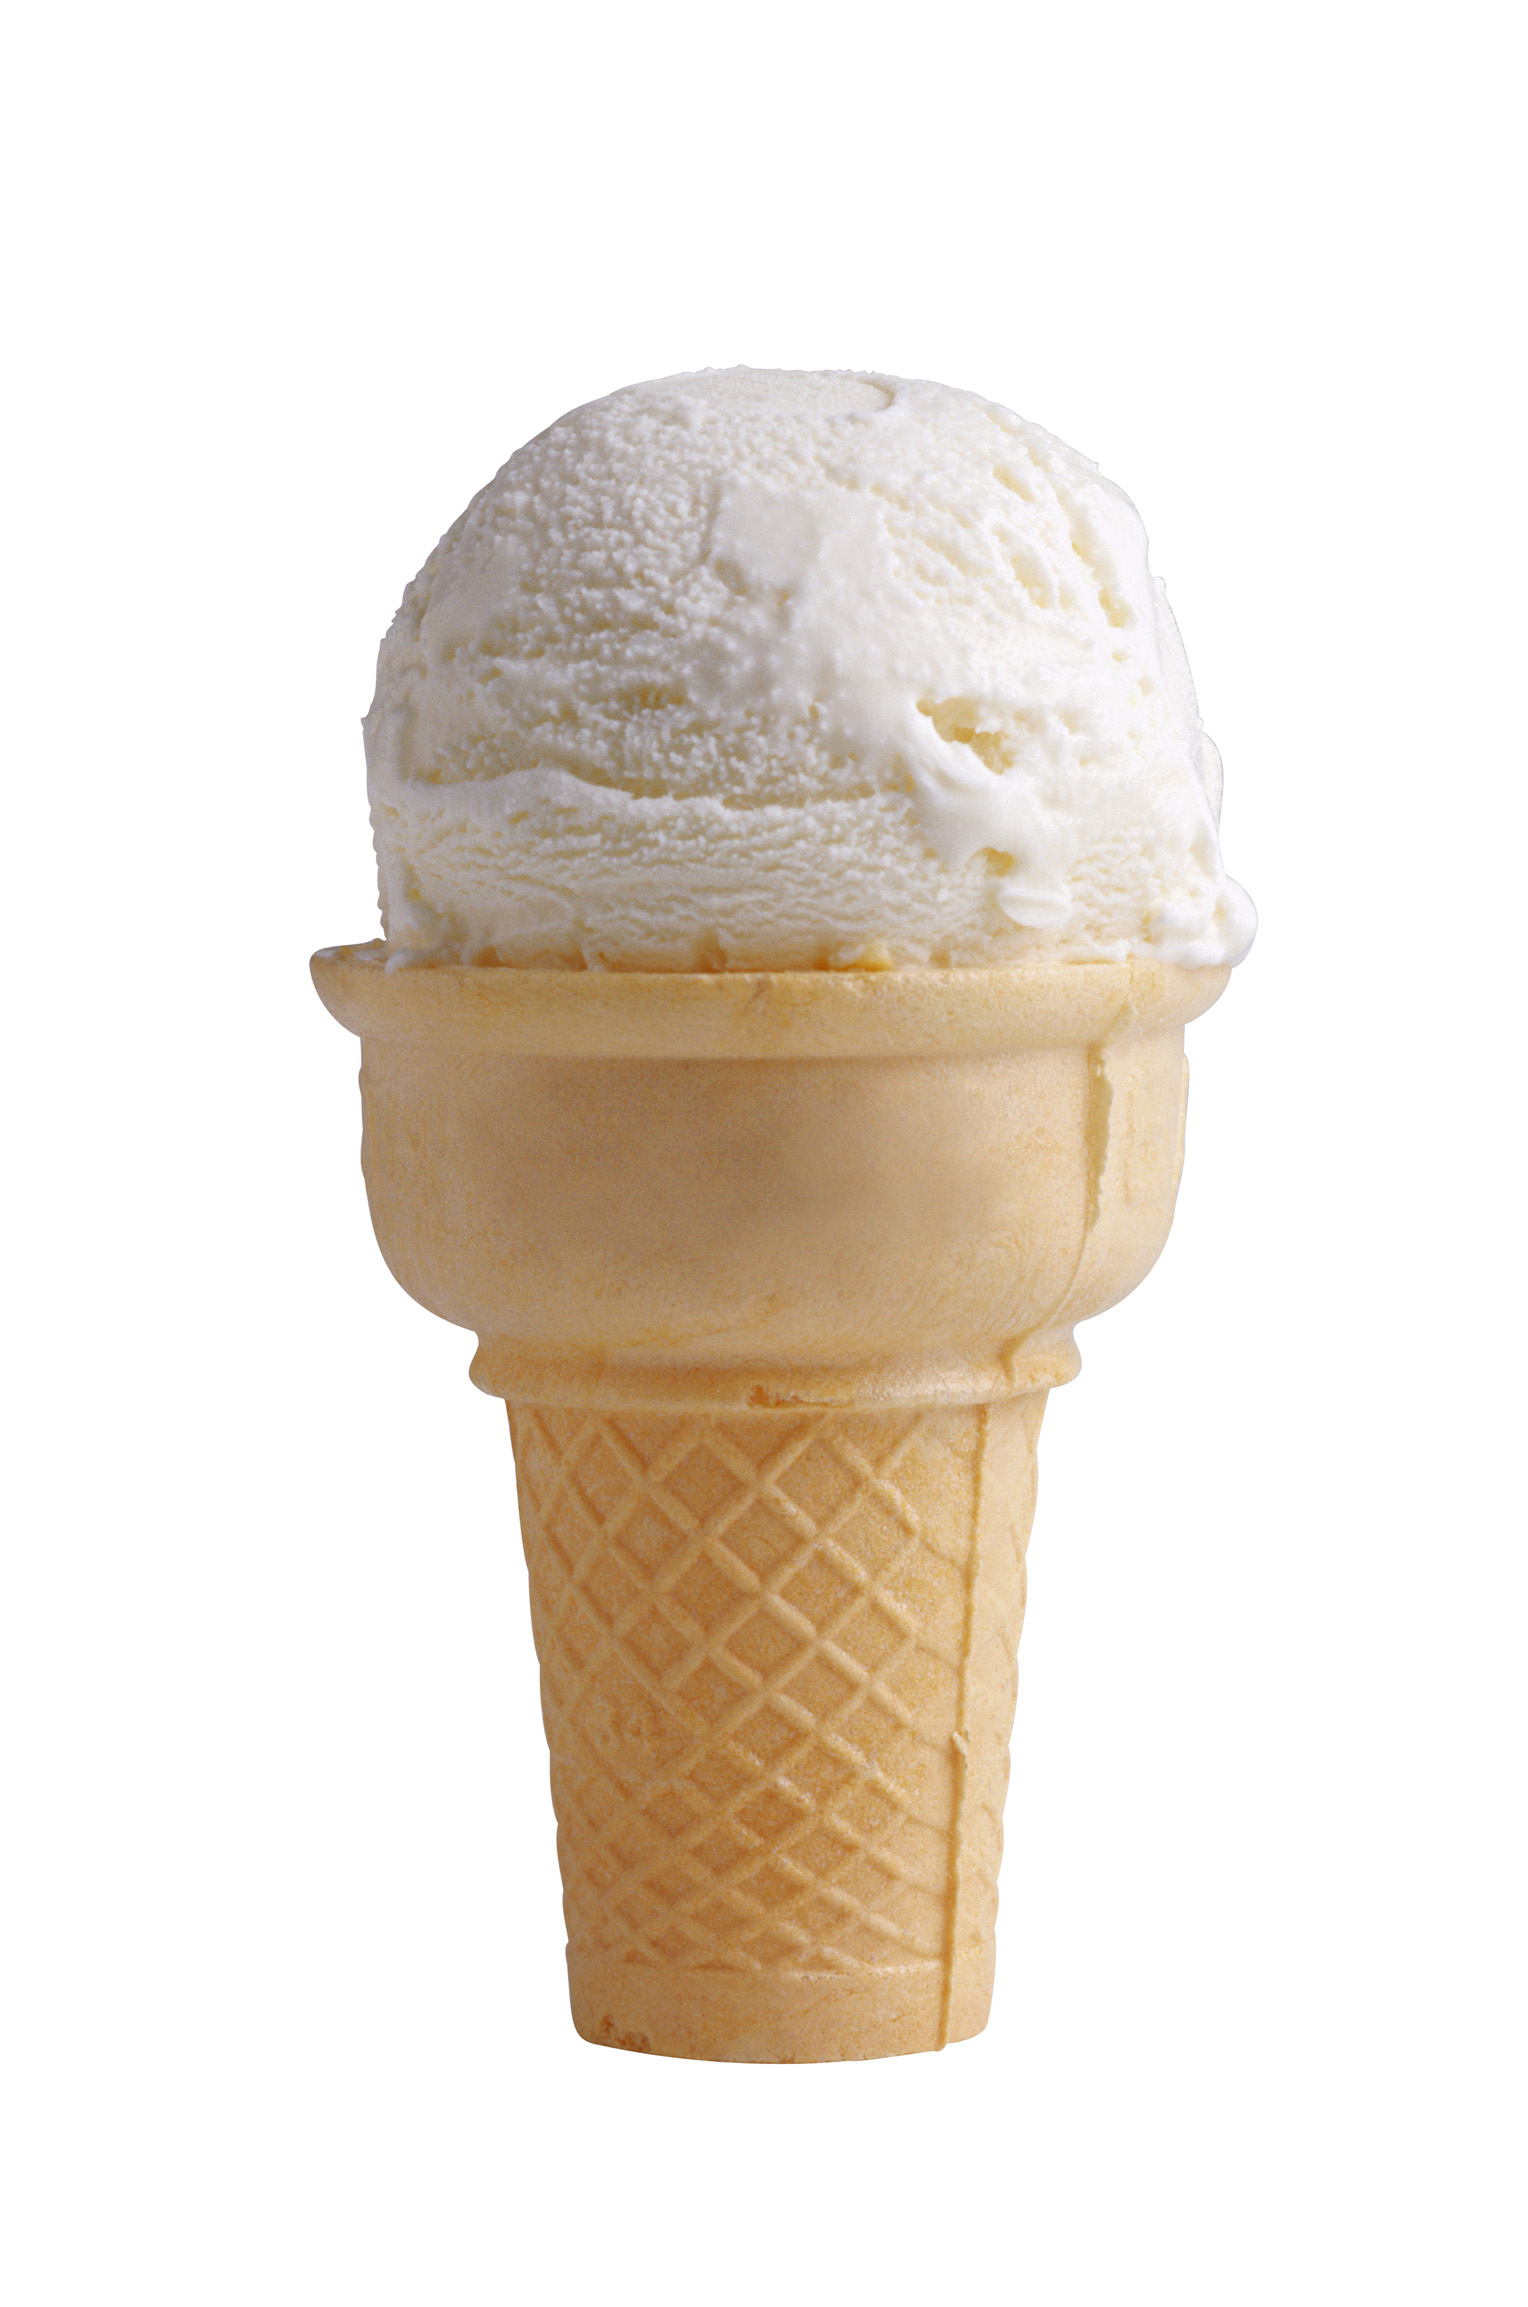 Ice Cream Cone Vanilla | Free Images at Clker.com - vector clip art ...